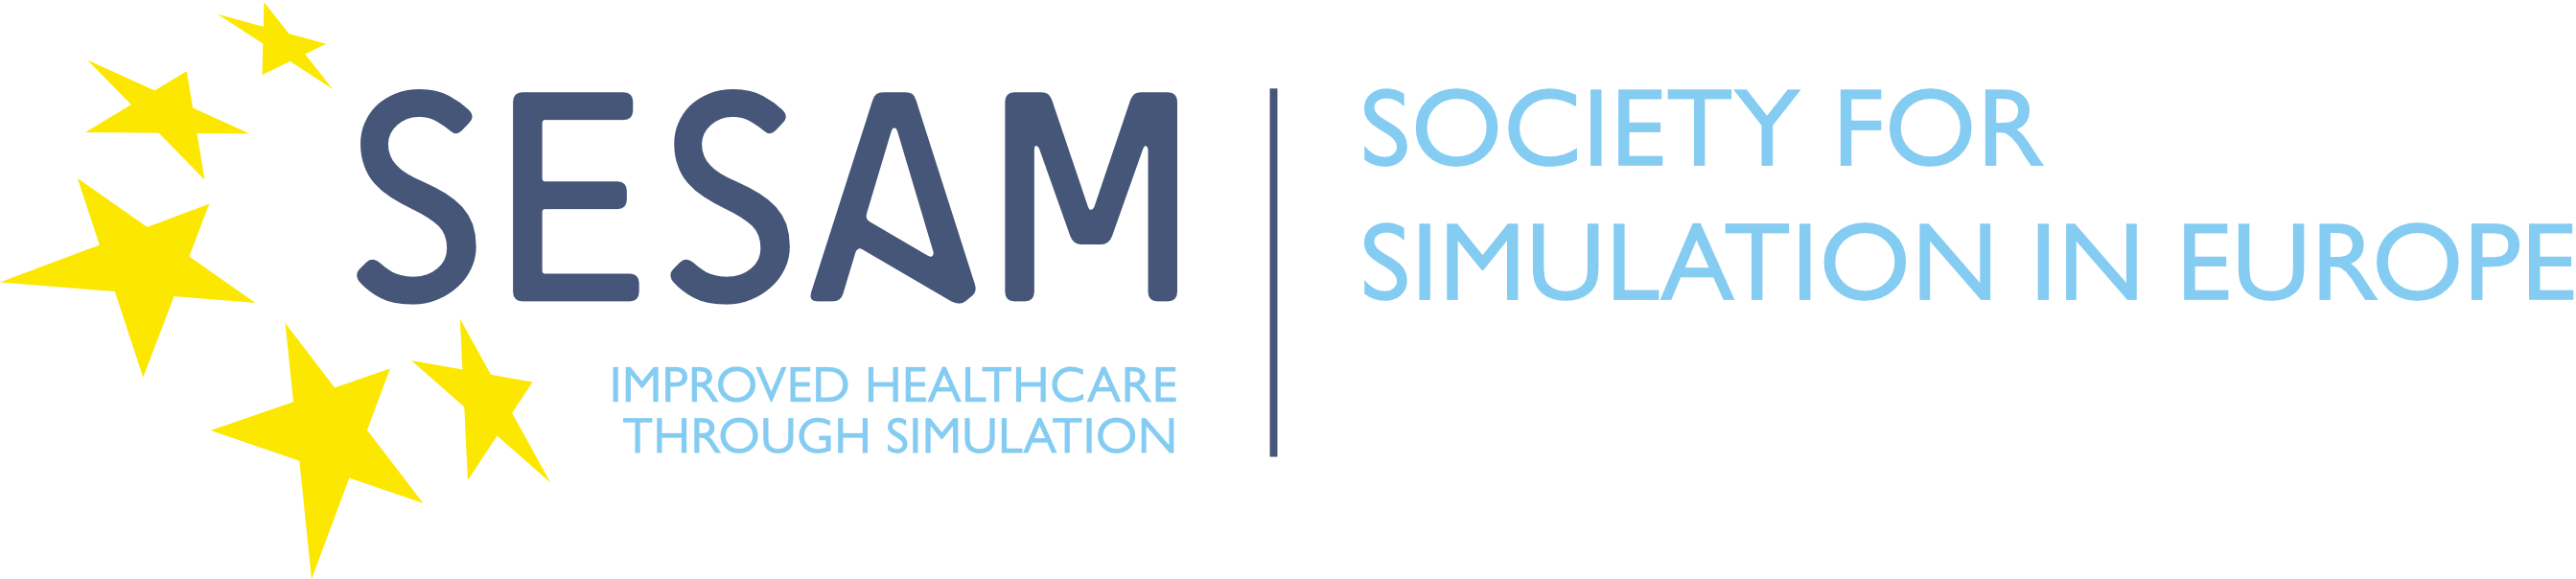 SESAM - Society in Europe for Simulation applied to medicine